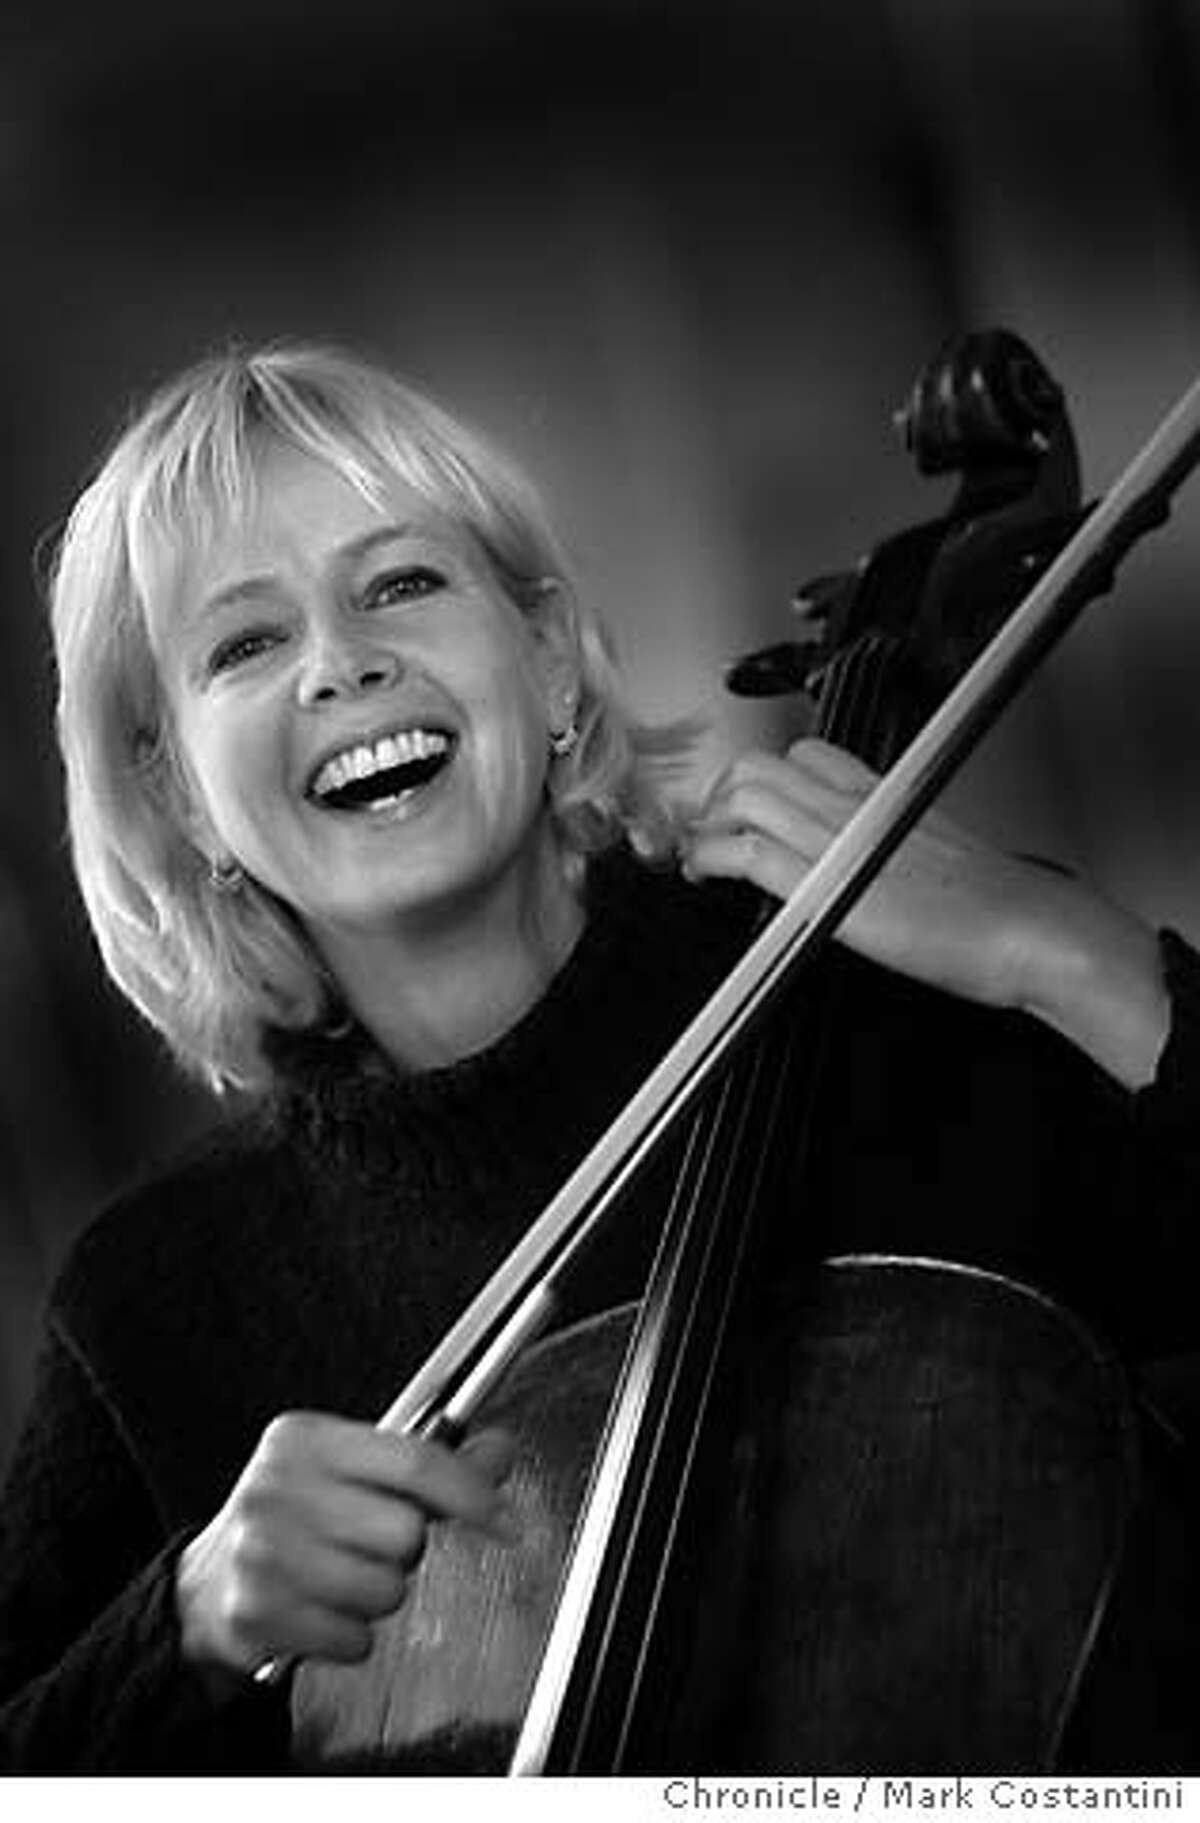 JENRENAUD_139_mc.jpg Cellist Joan Jenrenaud, formerly of the Kronos Quartet, who is collaborating with Nubian oud master Hamza al Din. Event on 11/4/04 in San Francisco. Mark Costantini / The Chronicle MANDATORY CREDIT FOR PHOTOG AND SF CHRONICLE/ -MAGS OUT Datebook#Datebook#SundayDateBook#11/7/2004#ALL#Advance##0422449397